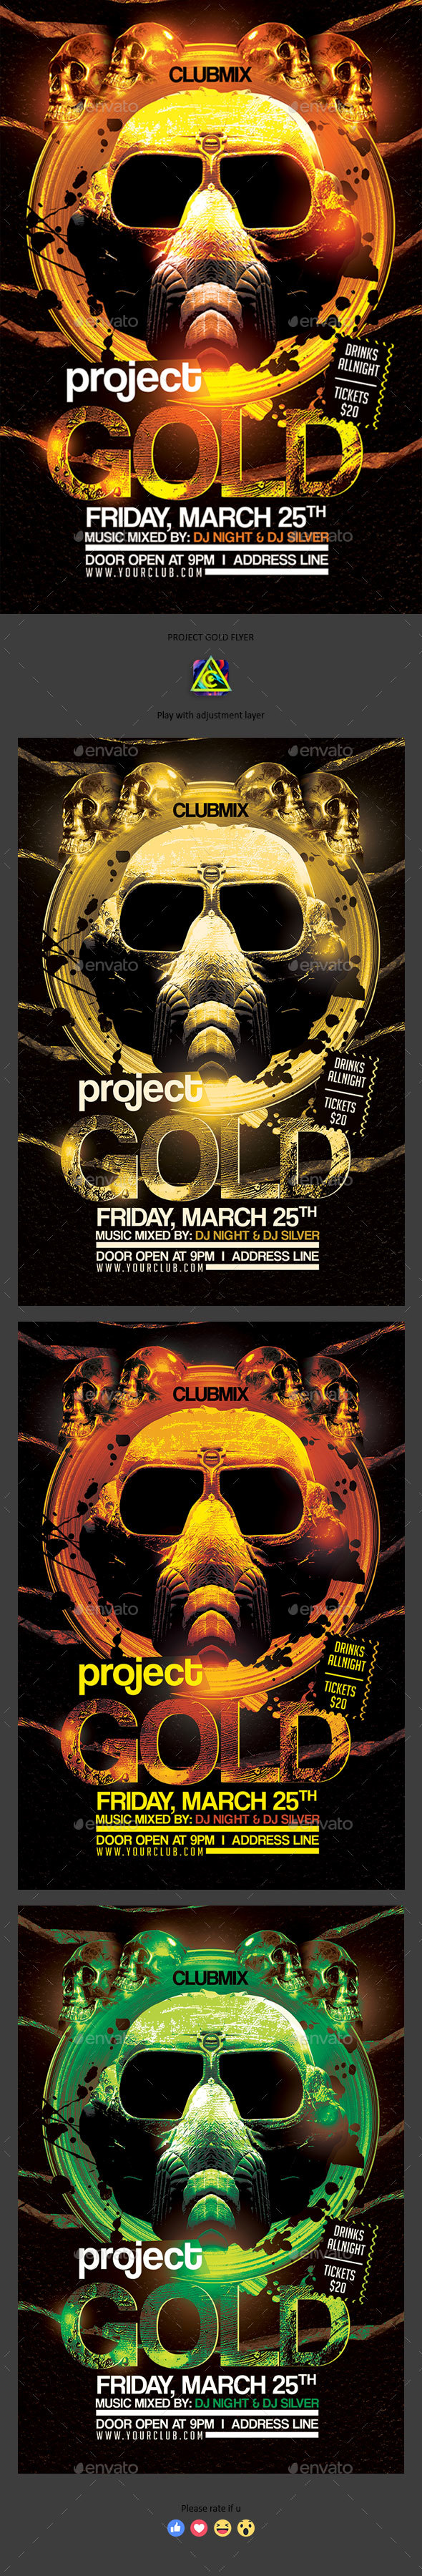 Project Gold Flyer - Clubs & Parties Events